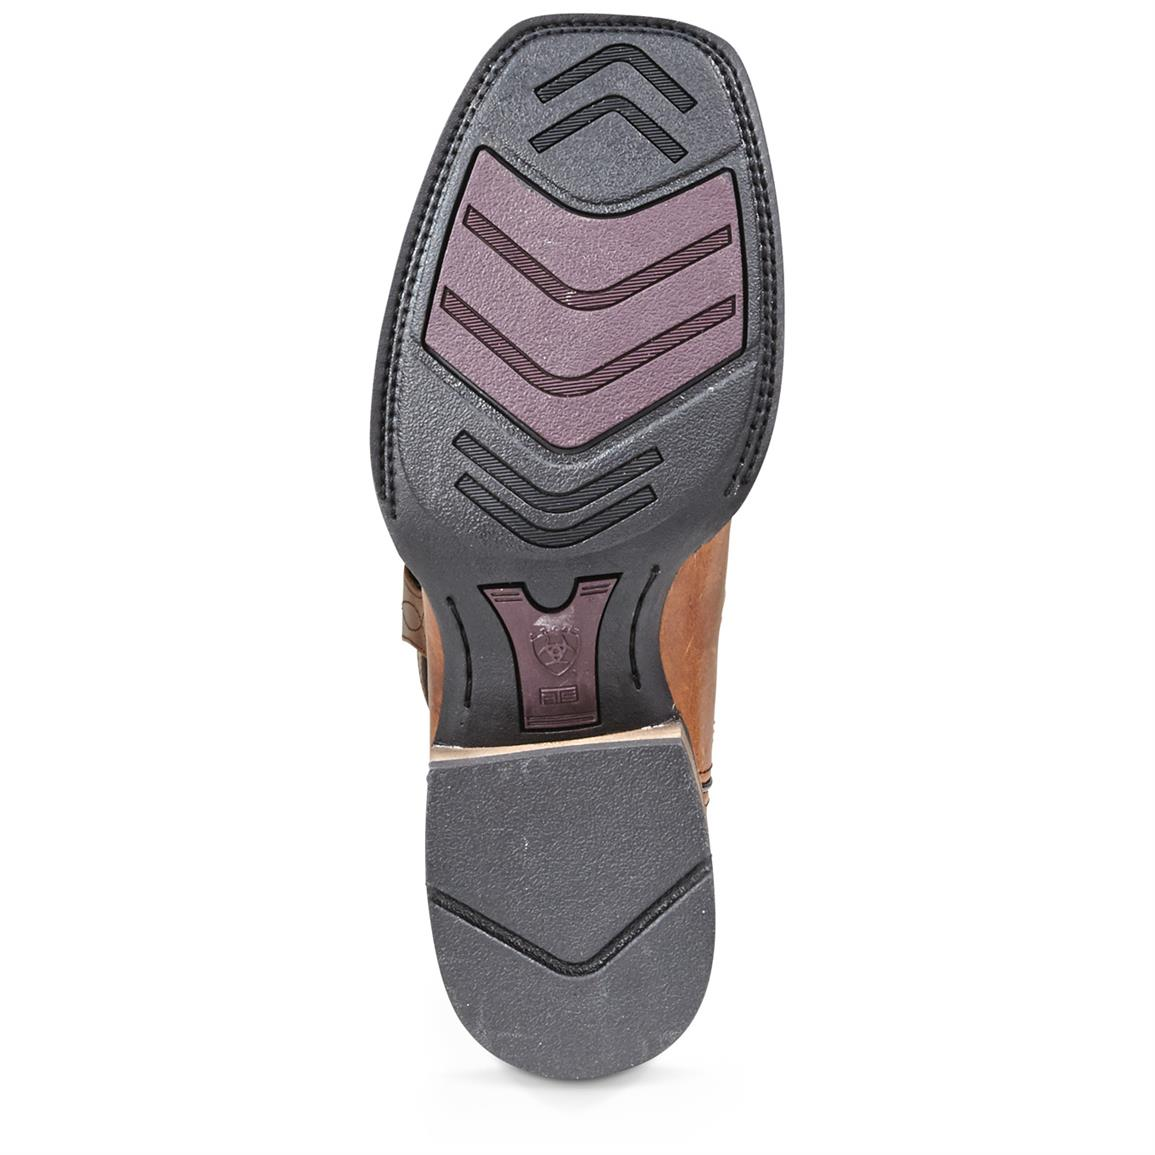 Duratread™ rubber outsole for traction